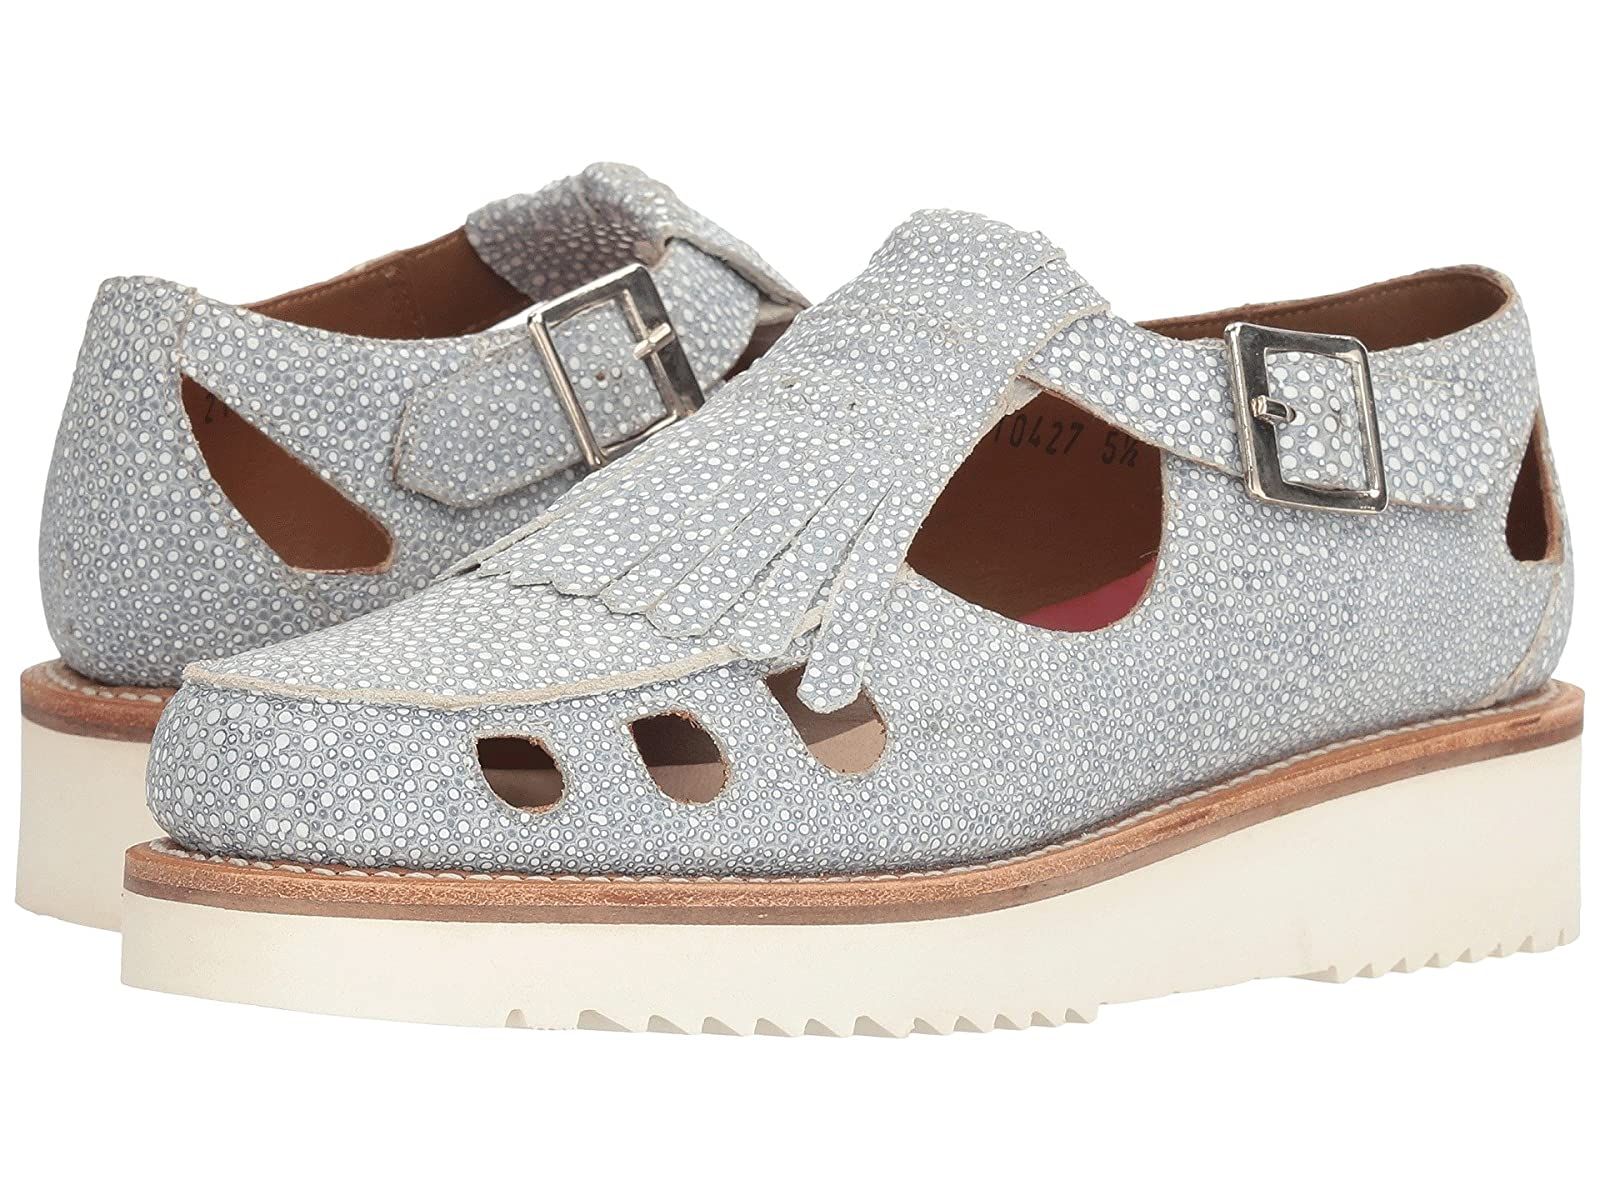 Grenson EthelCheap and distinctive eye-catching shoes